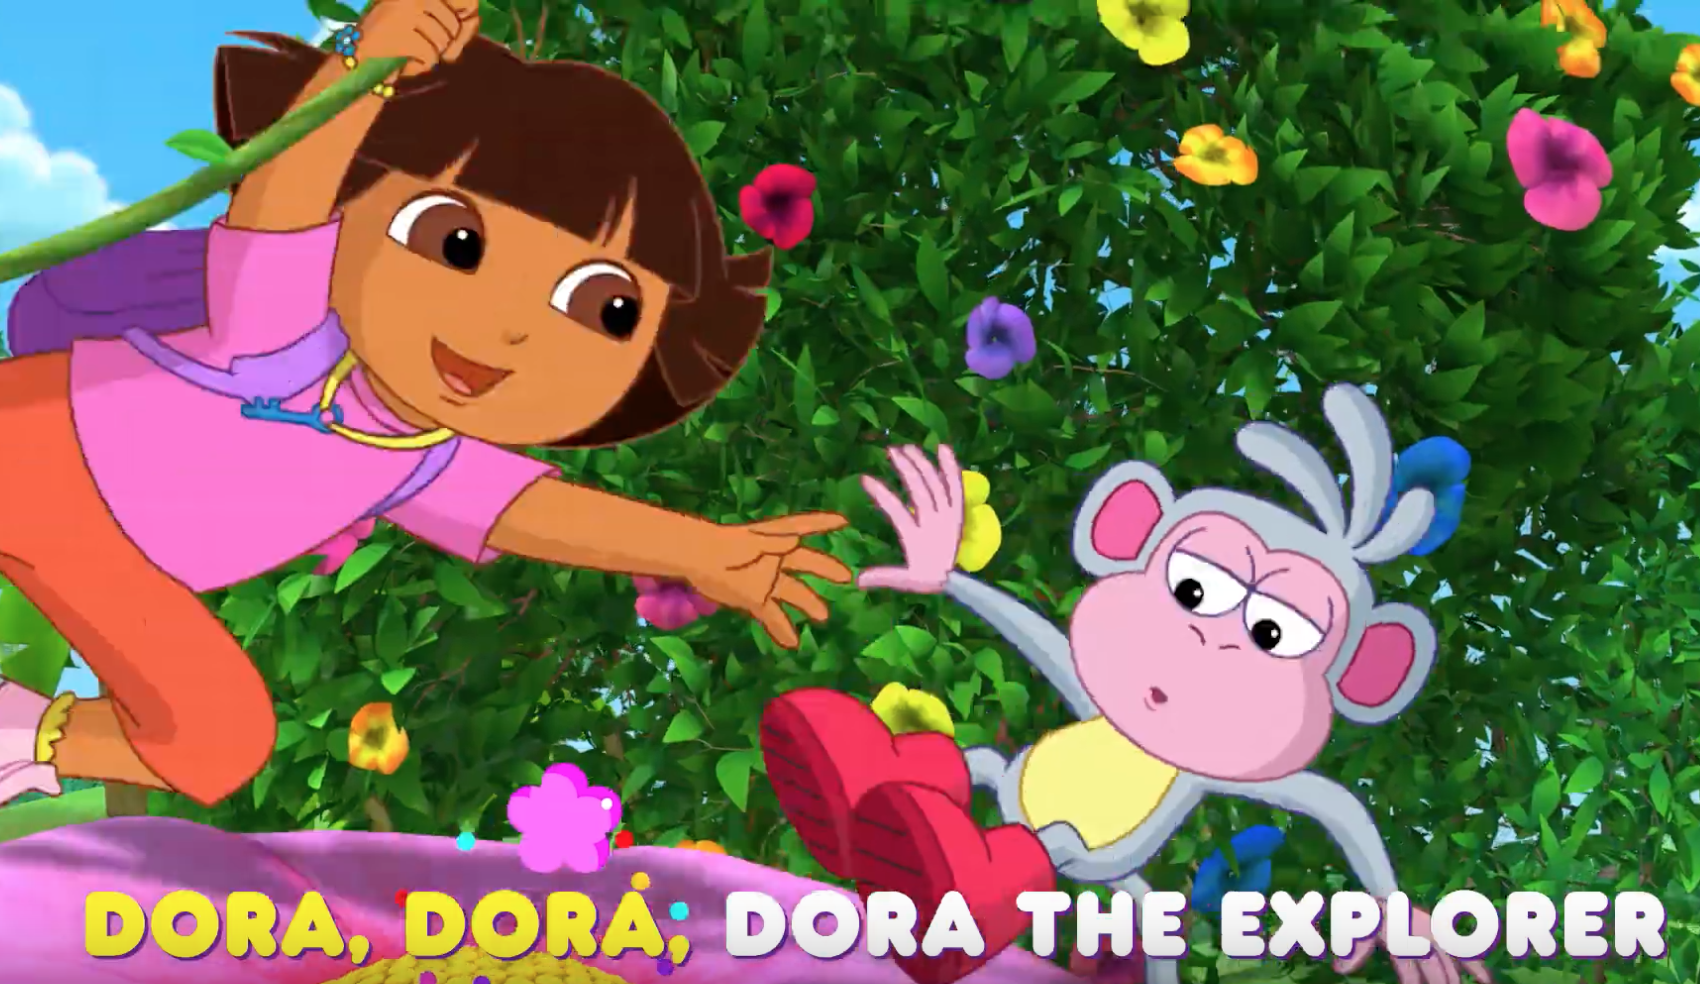 Dora's Singalong with friends